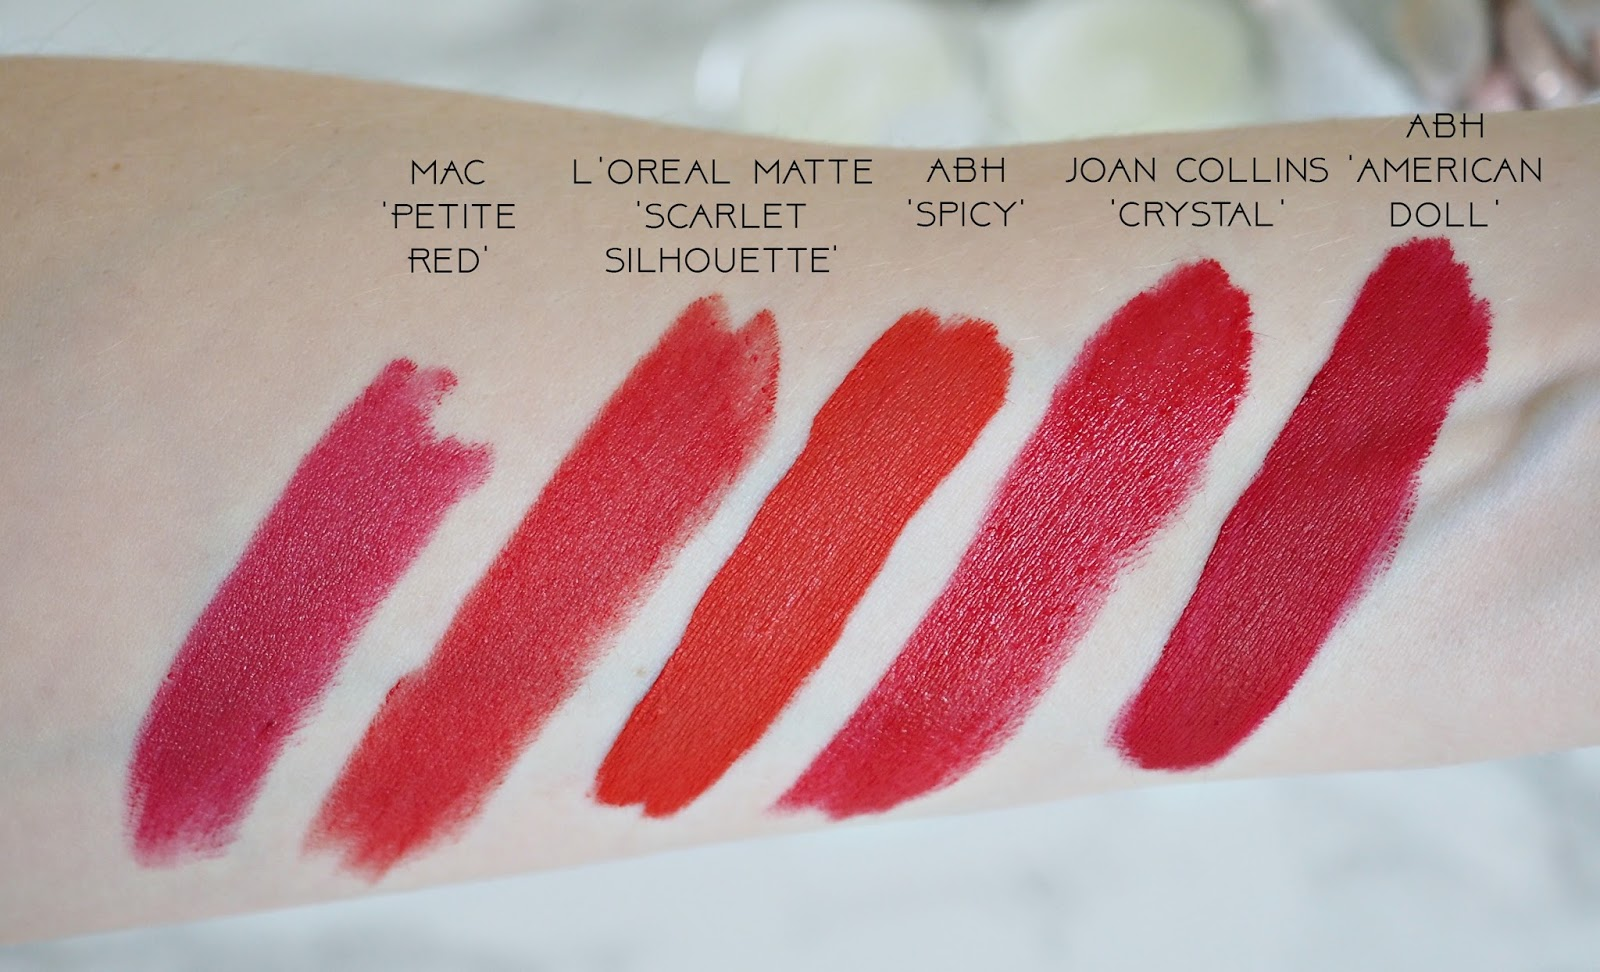 My 5 favourite red lipsticks swatches including MAC, ABH, Loreal and Joan Collins